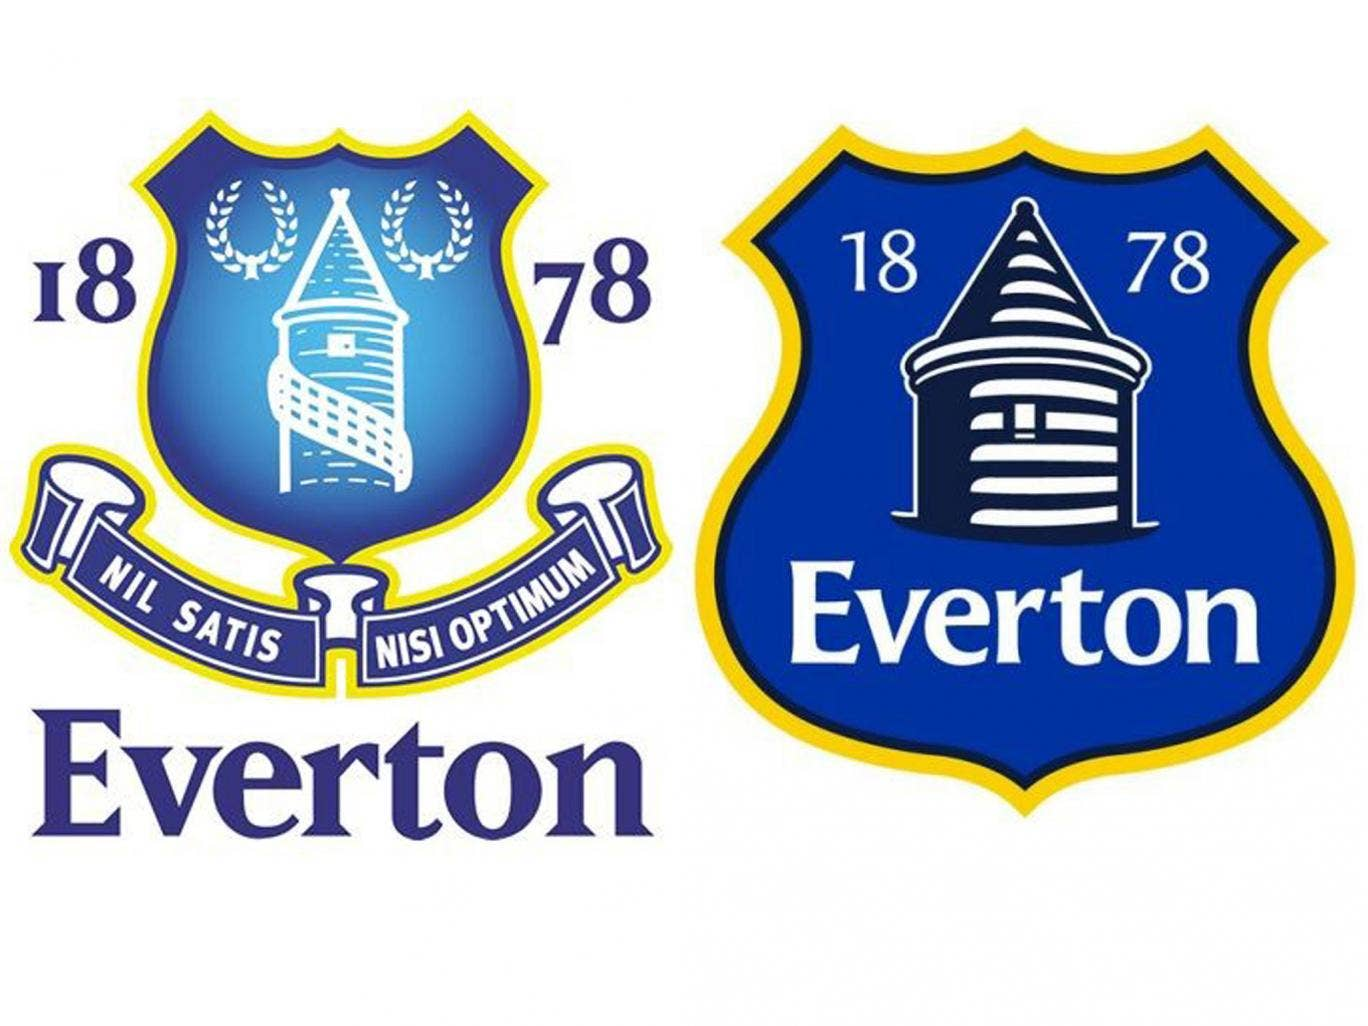 Everton's crests from last season (left) and next season (right)